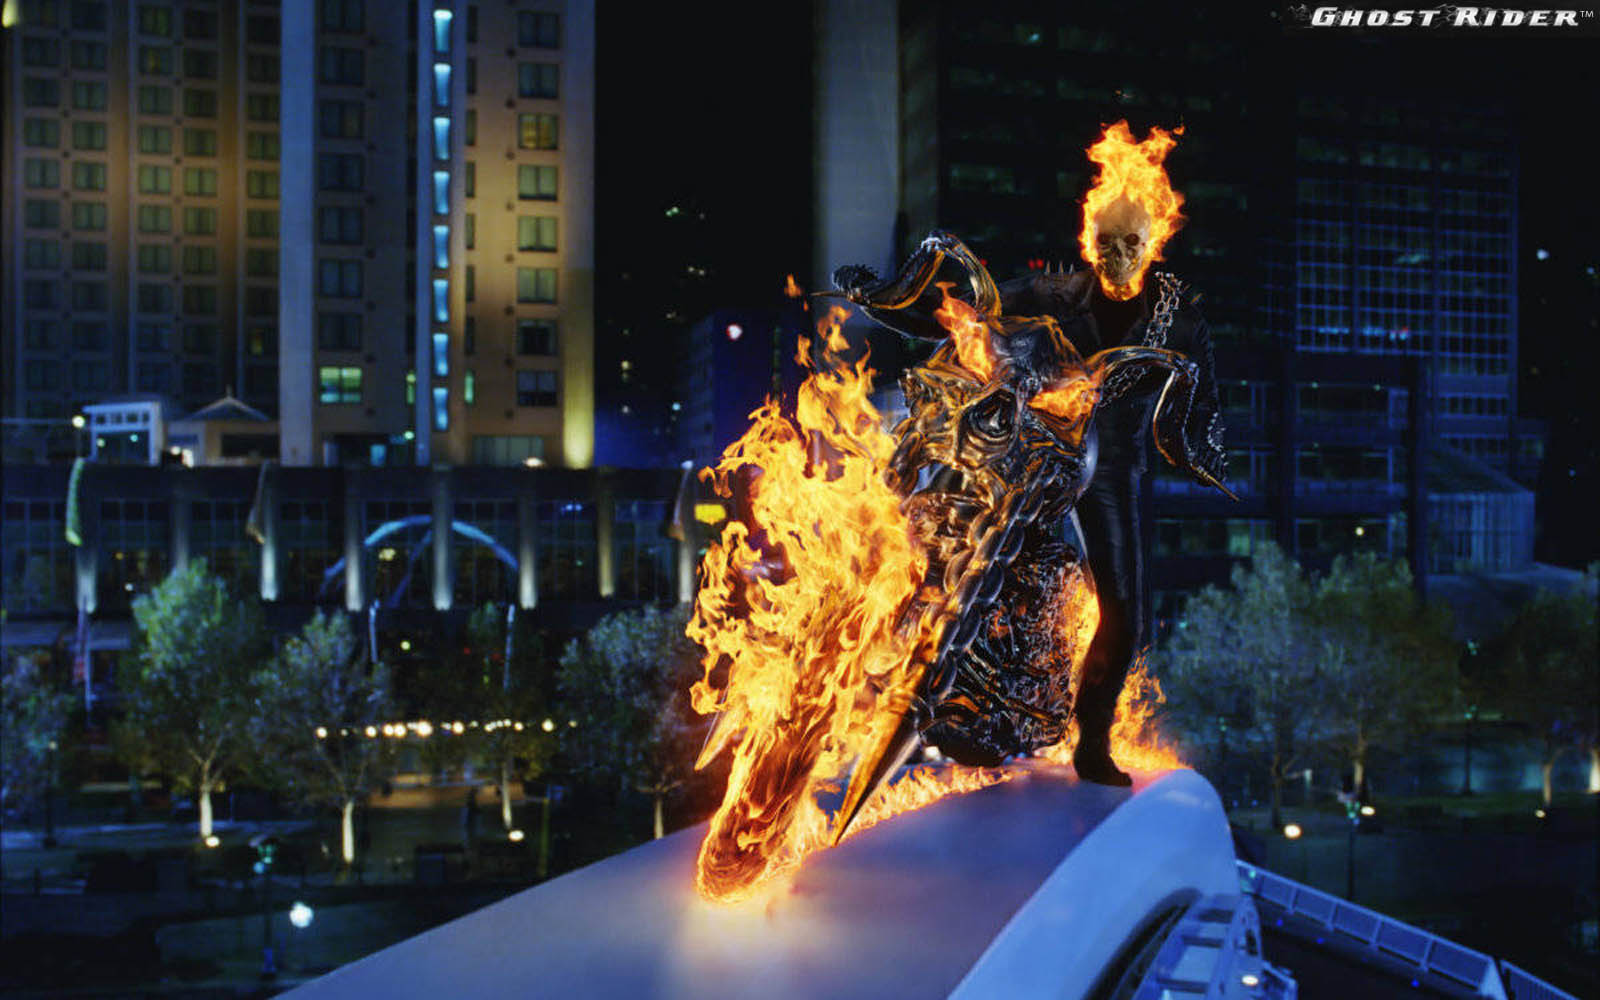 Download   Wallpaper Horse Ghost Rider - Ghost+Rider+Wallpapers+8  HD_796514.jpg